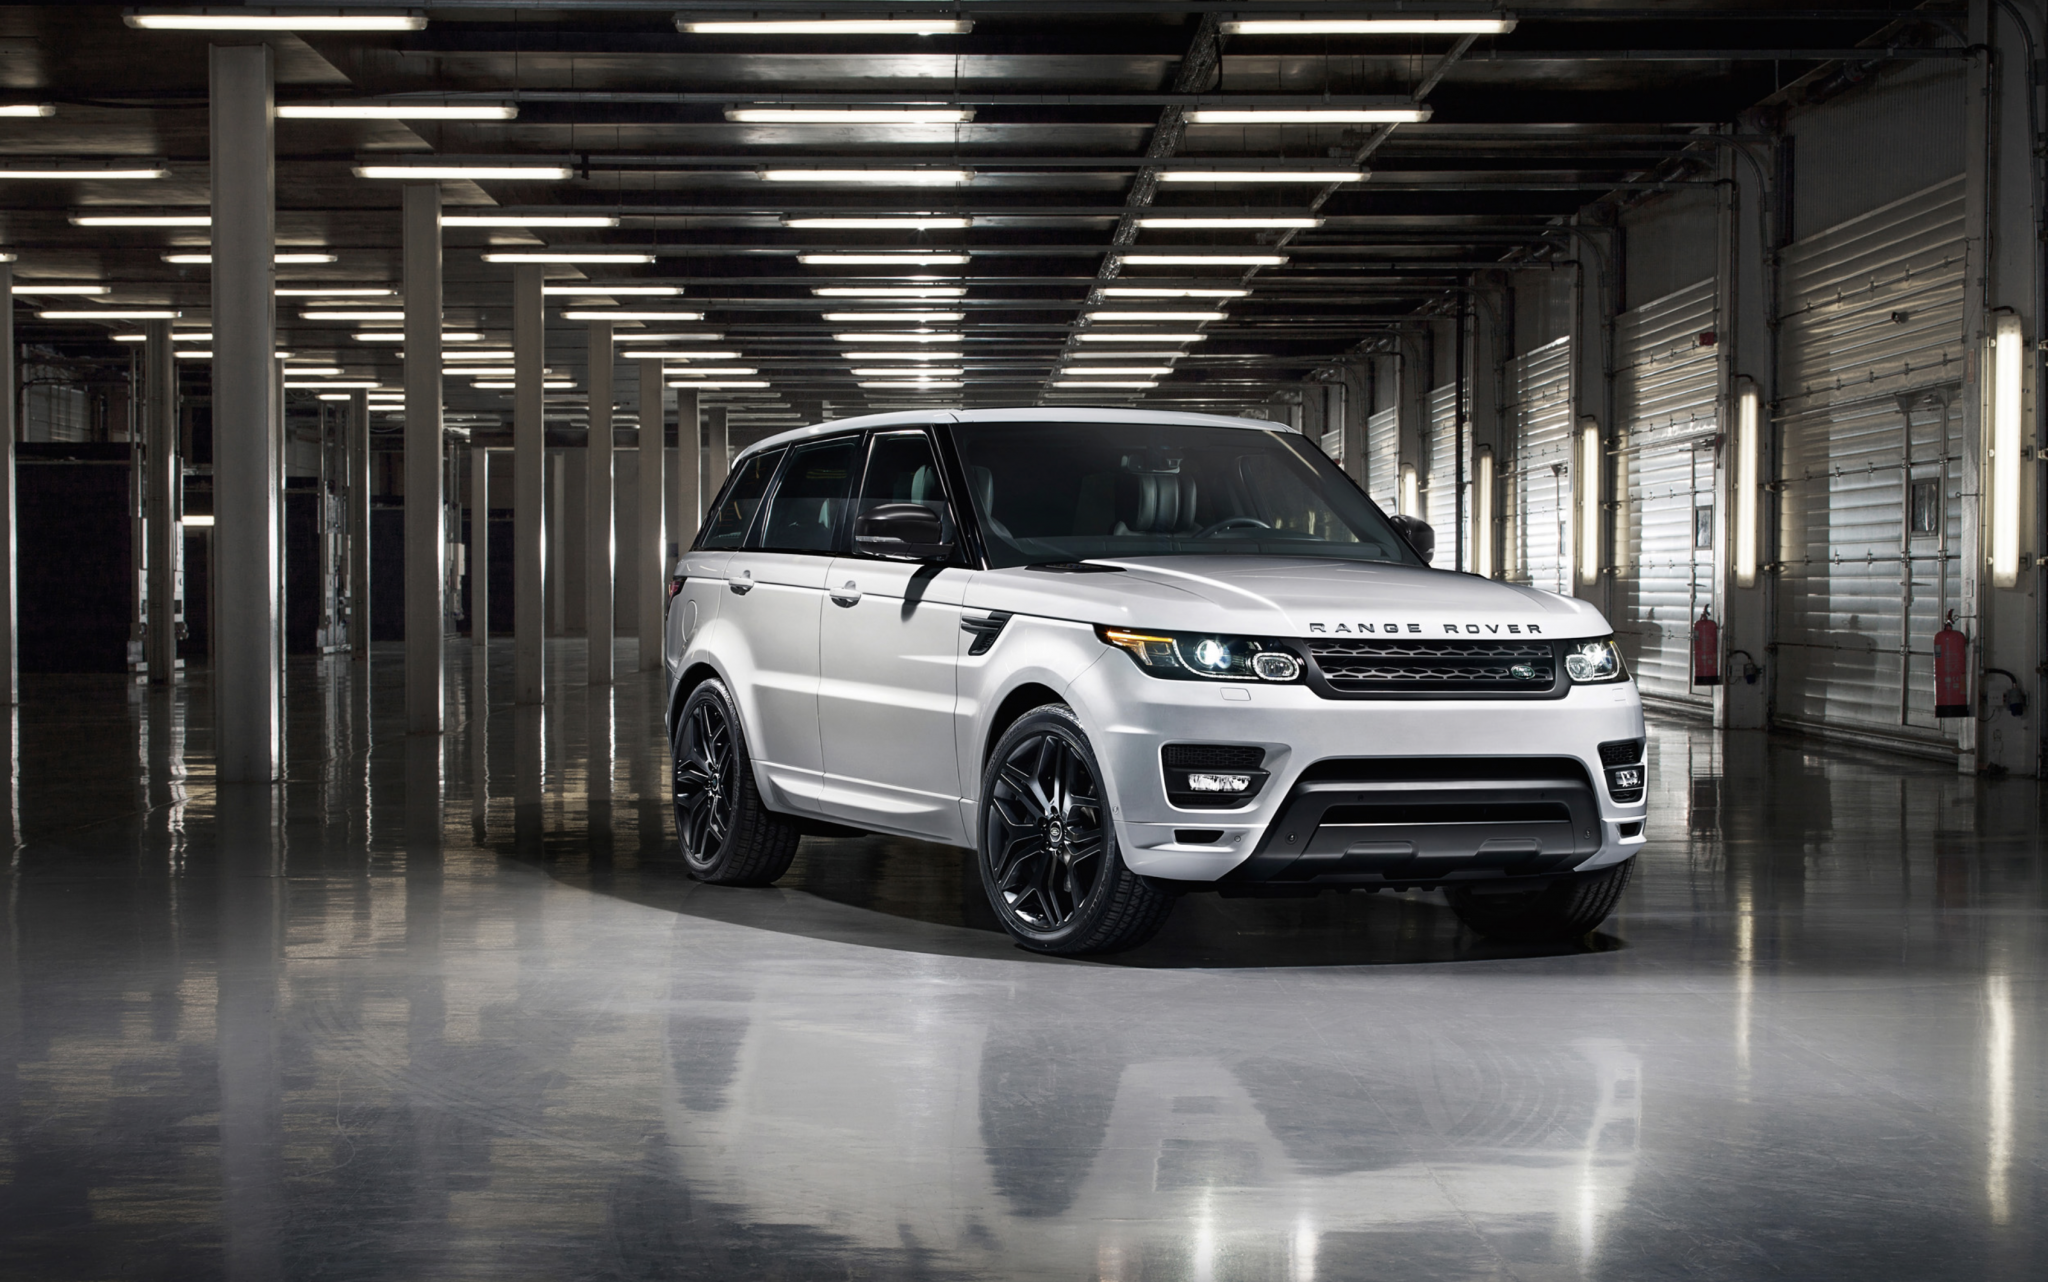 Range Rover Vehicle Review